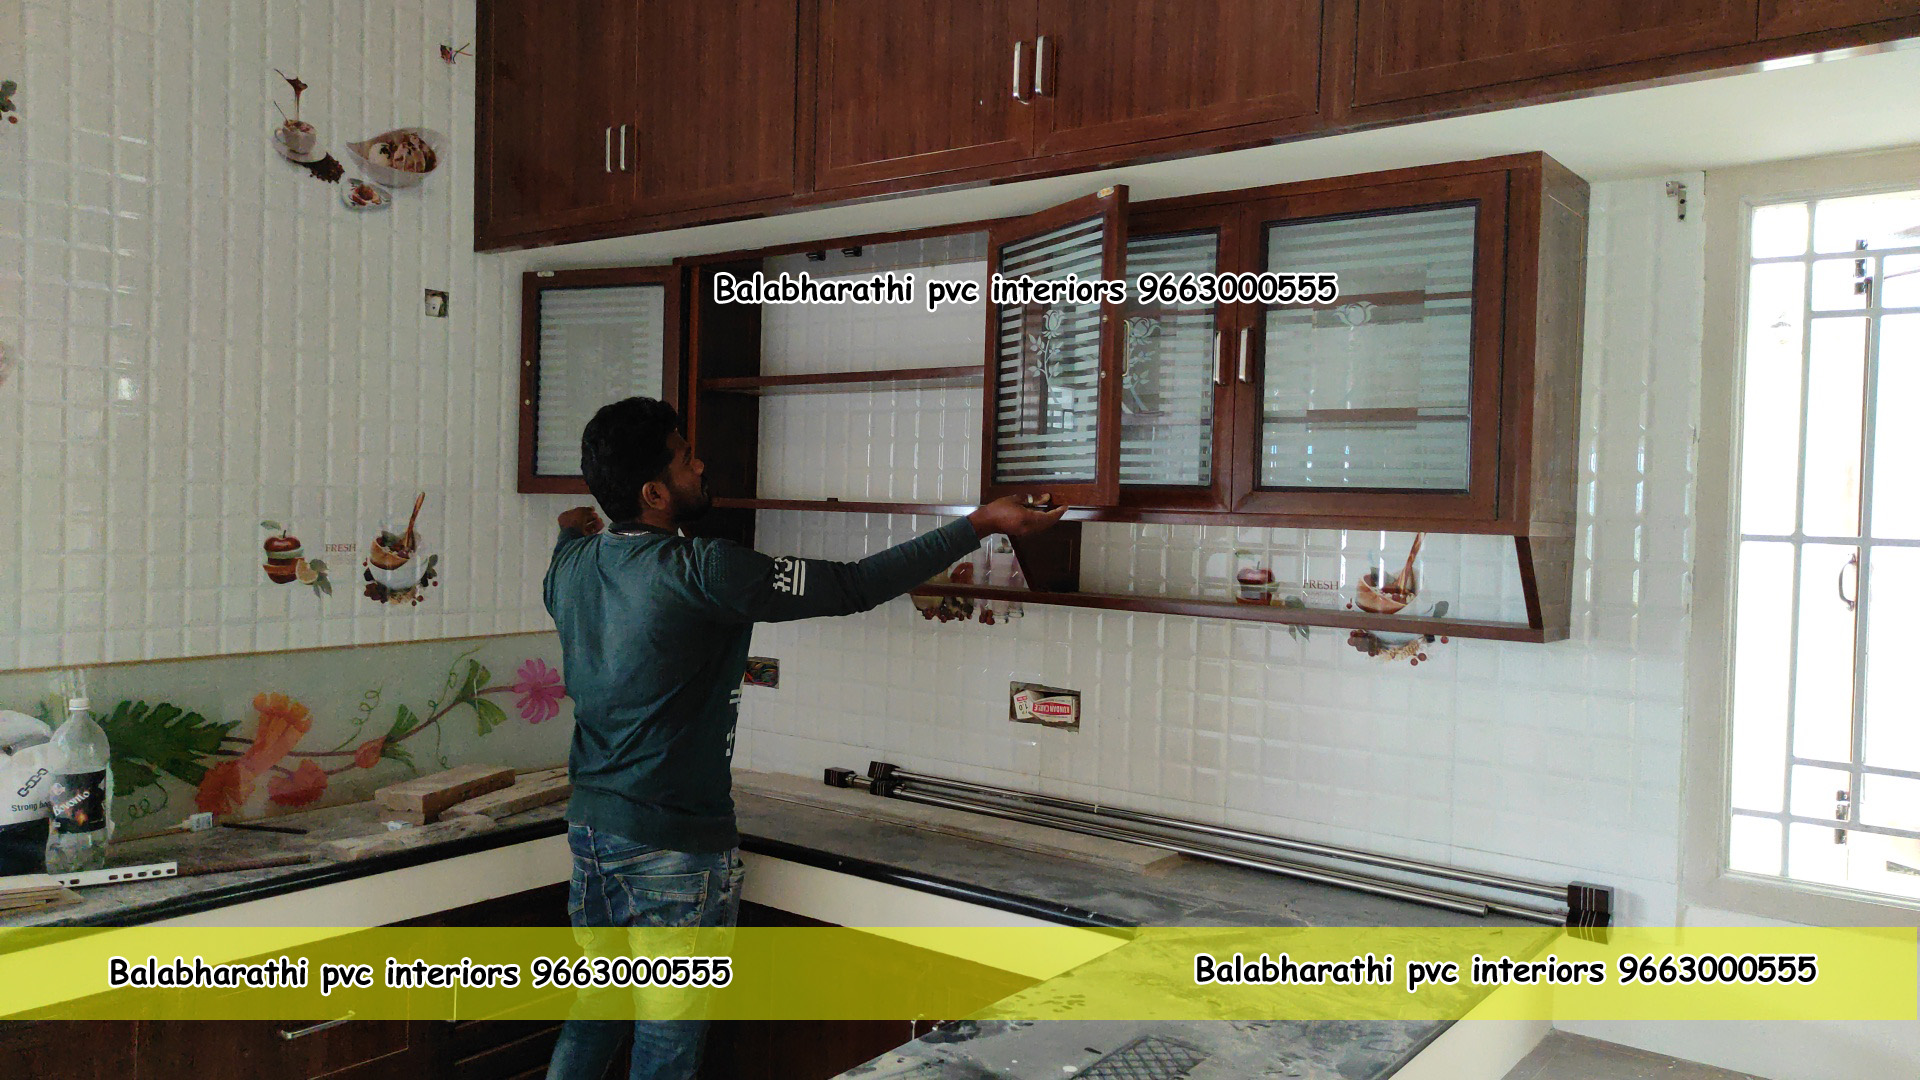 pvc kitchen cabinets work anantapur